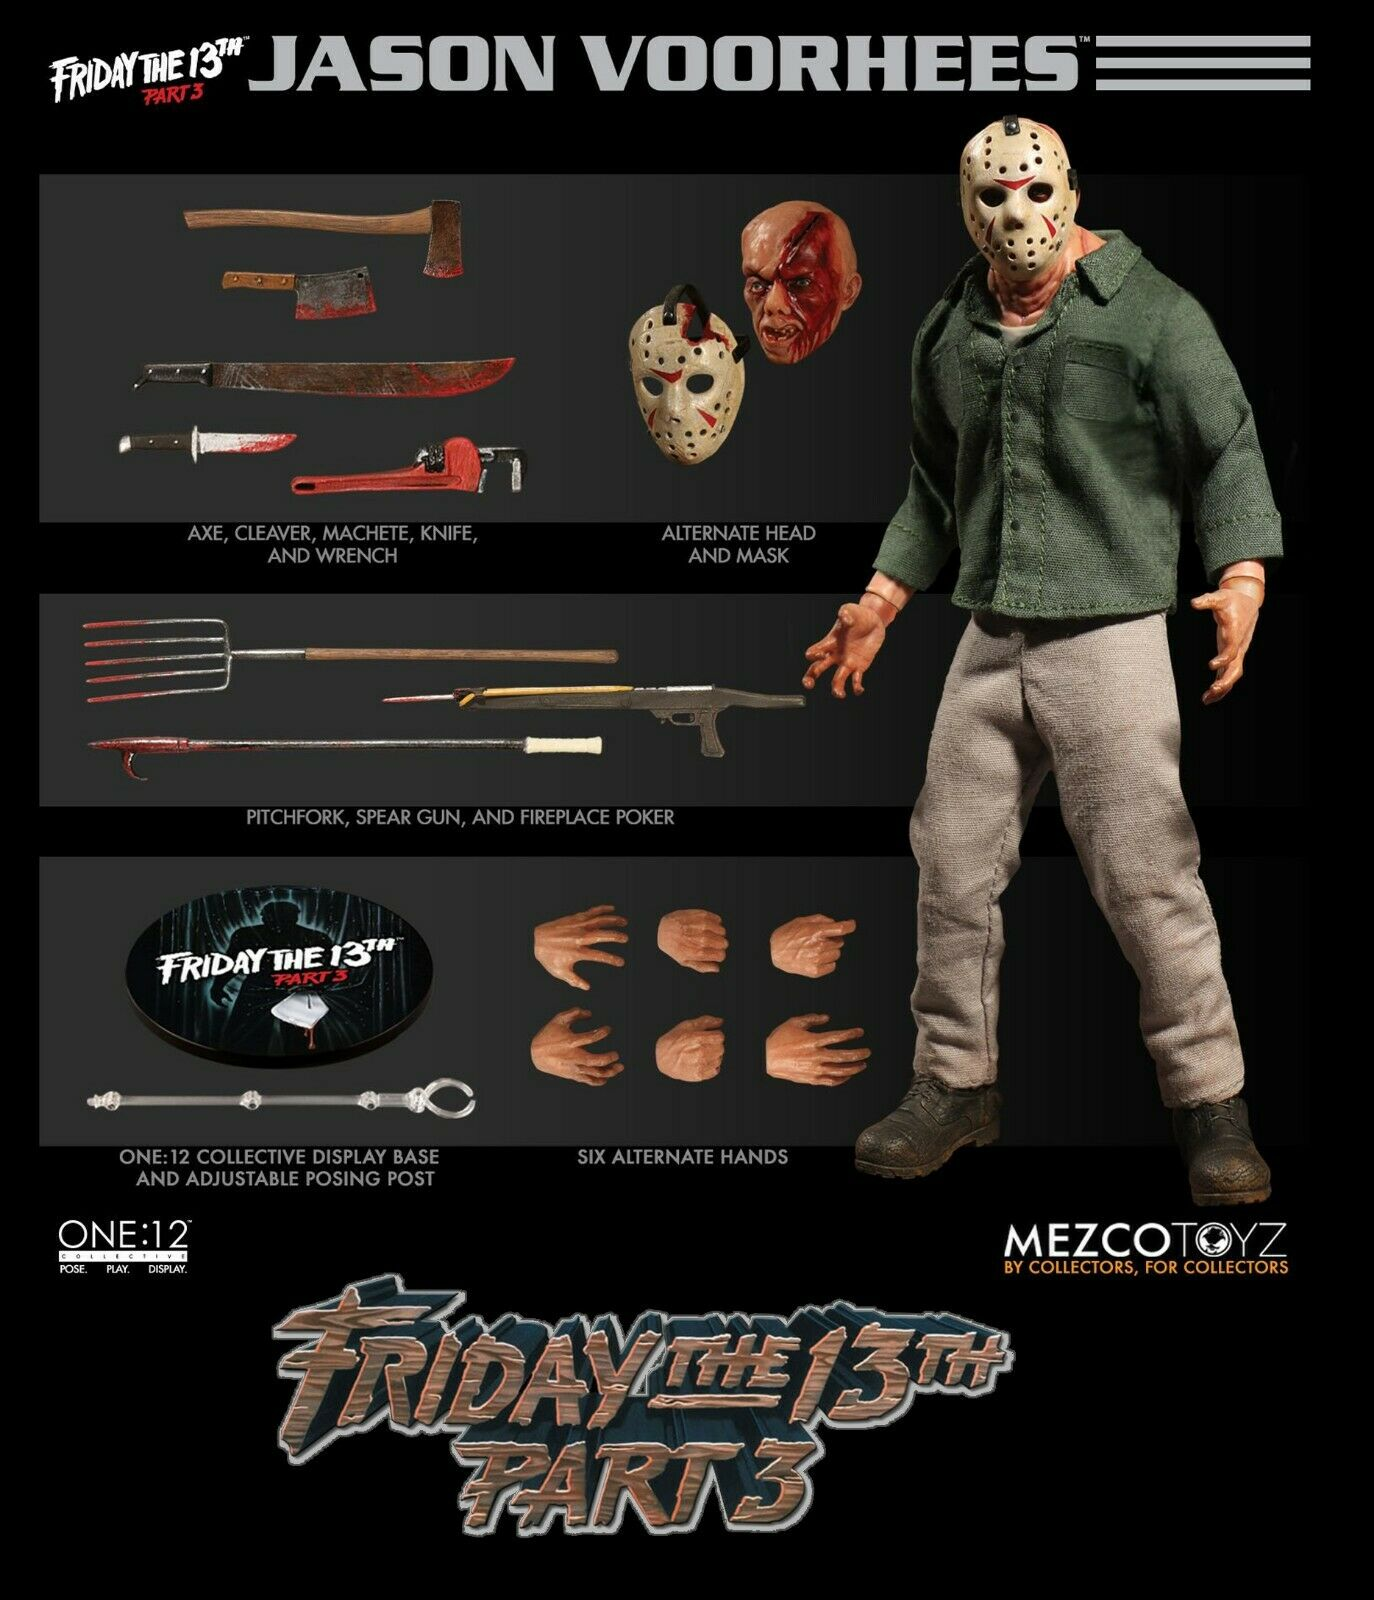 Mezco ONE 12 Collective JASON VOORHEES - Friday The 13th Part III 3 Mint in Box